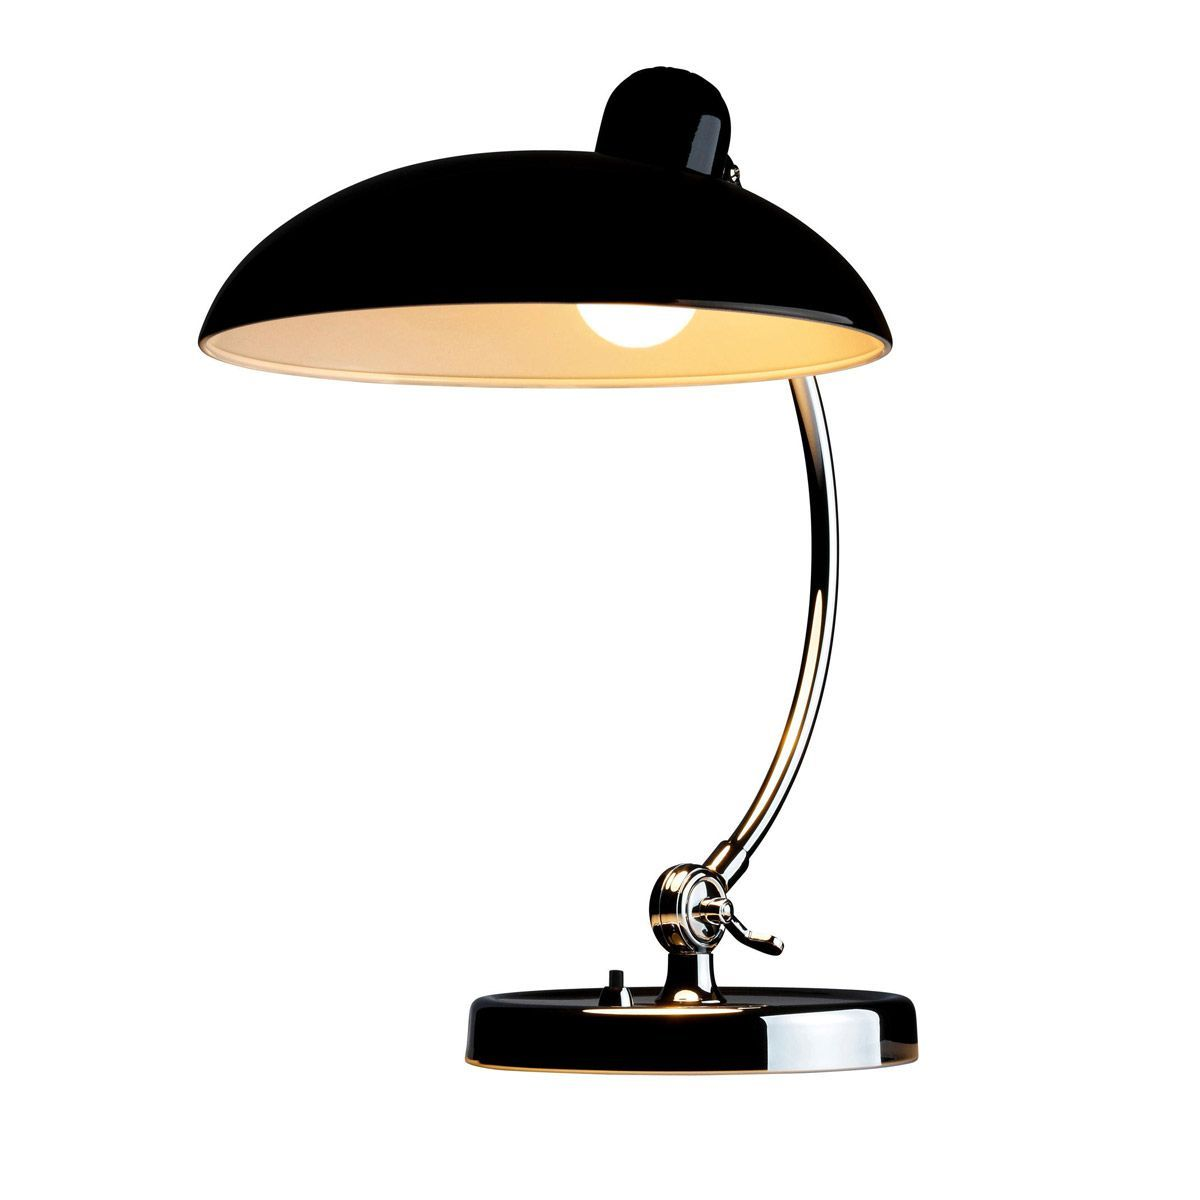 Lampe Kaiser Idell 6631 de Christian Dell aux éditions Light Years